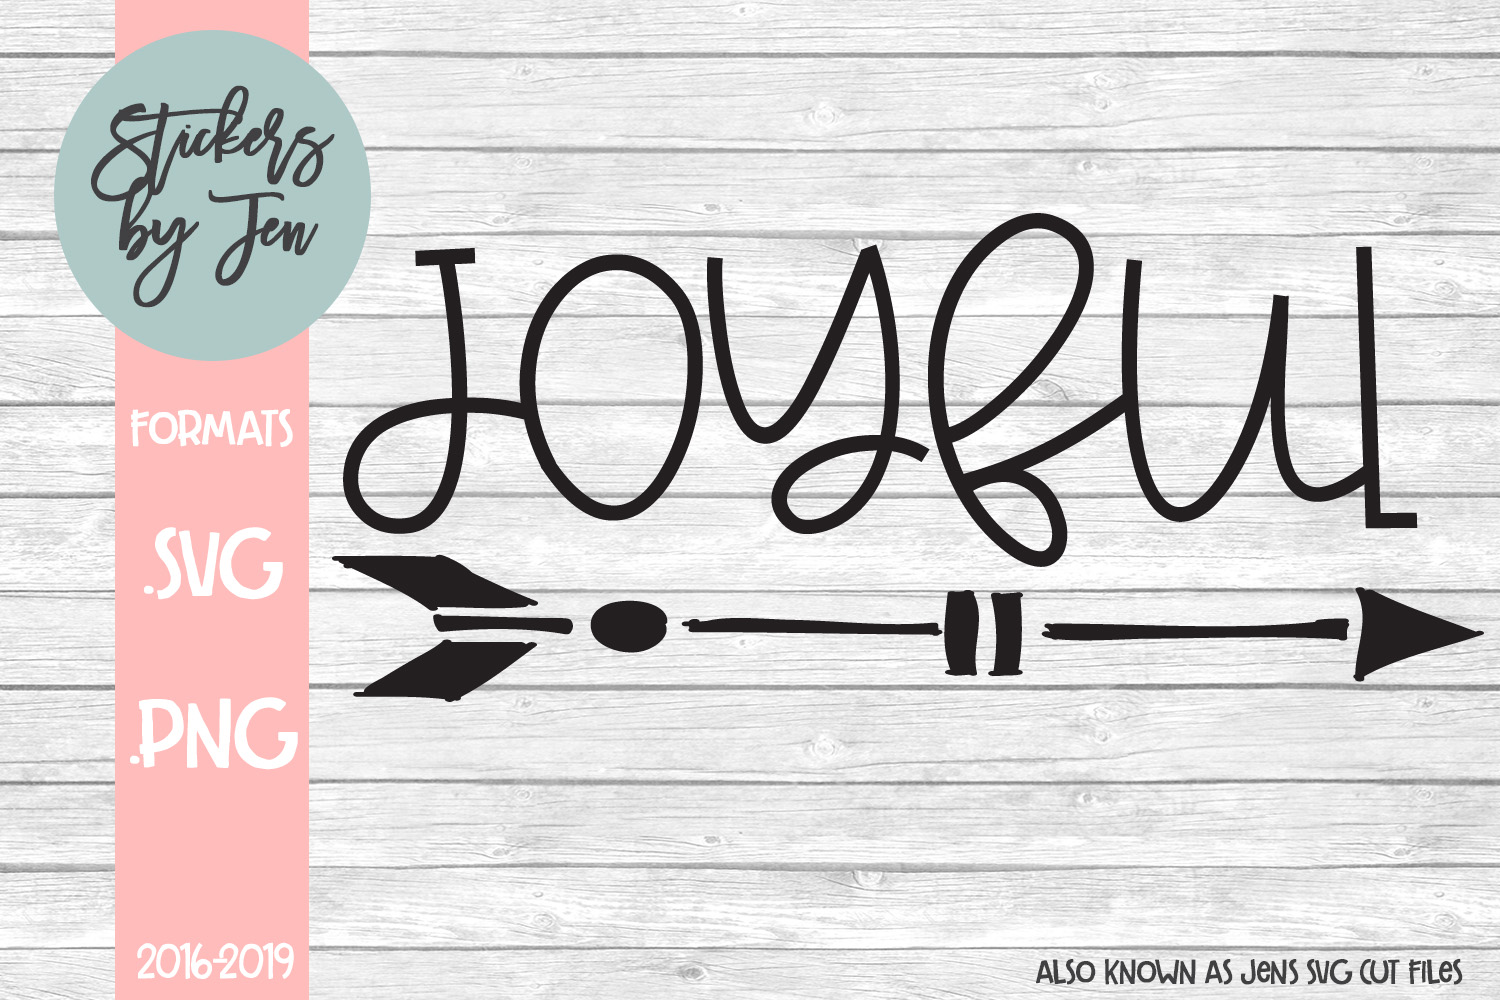 Download Free Joyful Graphic By Stickers By Jennifer Creative Fabrica for Cricut Explore, Silhouette and other cutting machines.